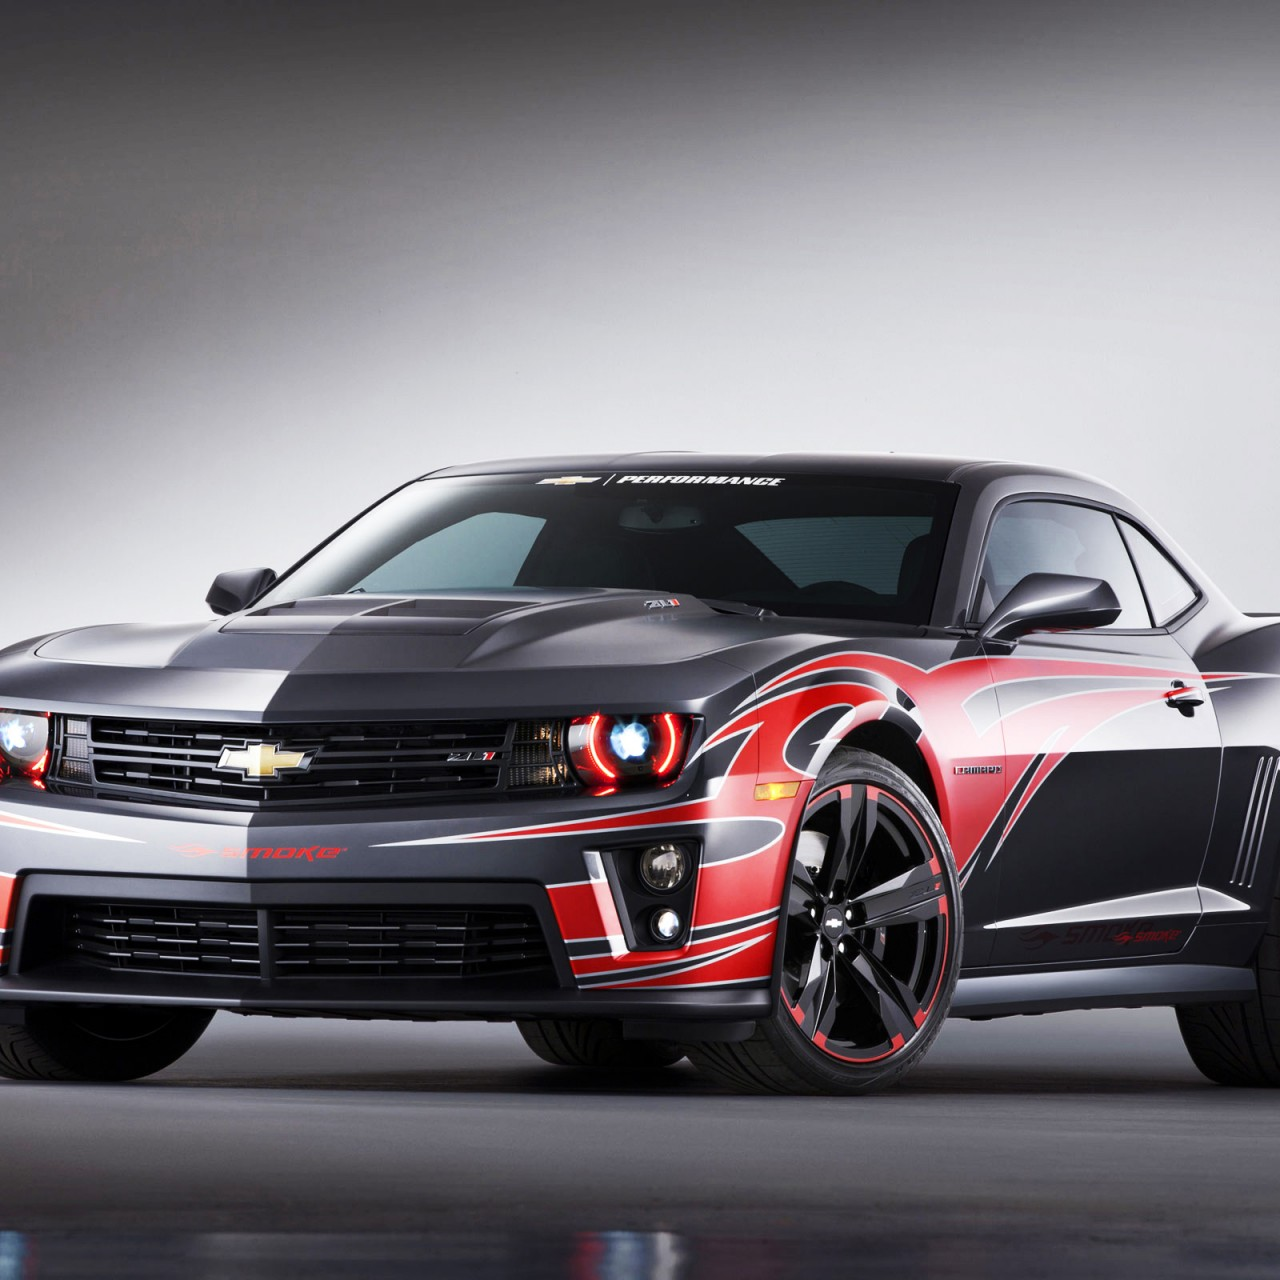 chevy muscle car wallpaper 6472 hd wallpapersjpg 1280x1280